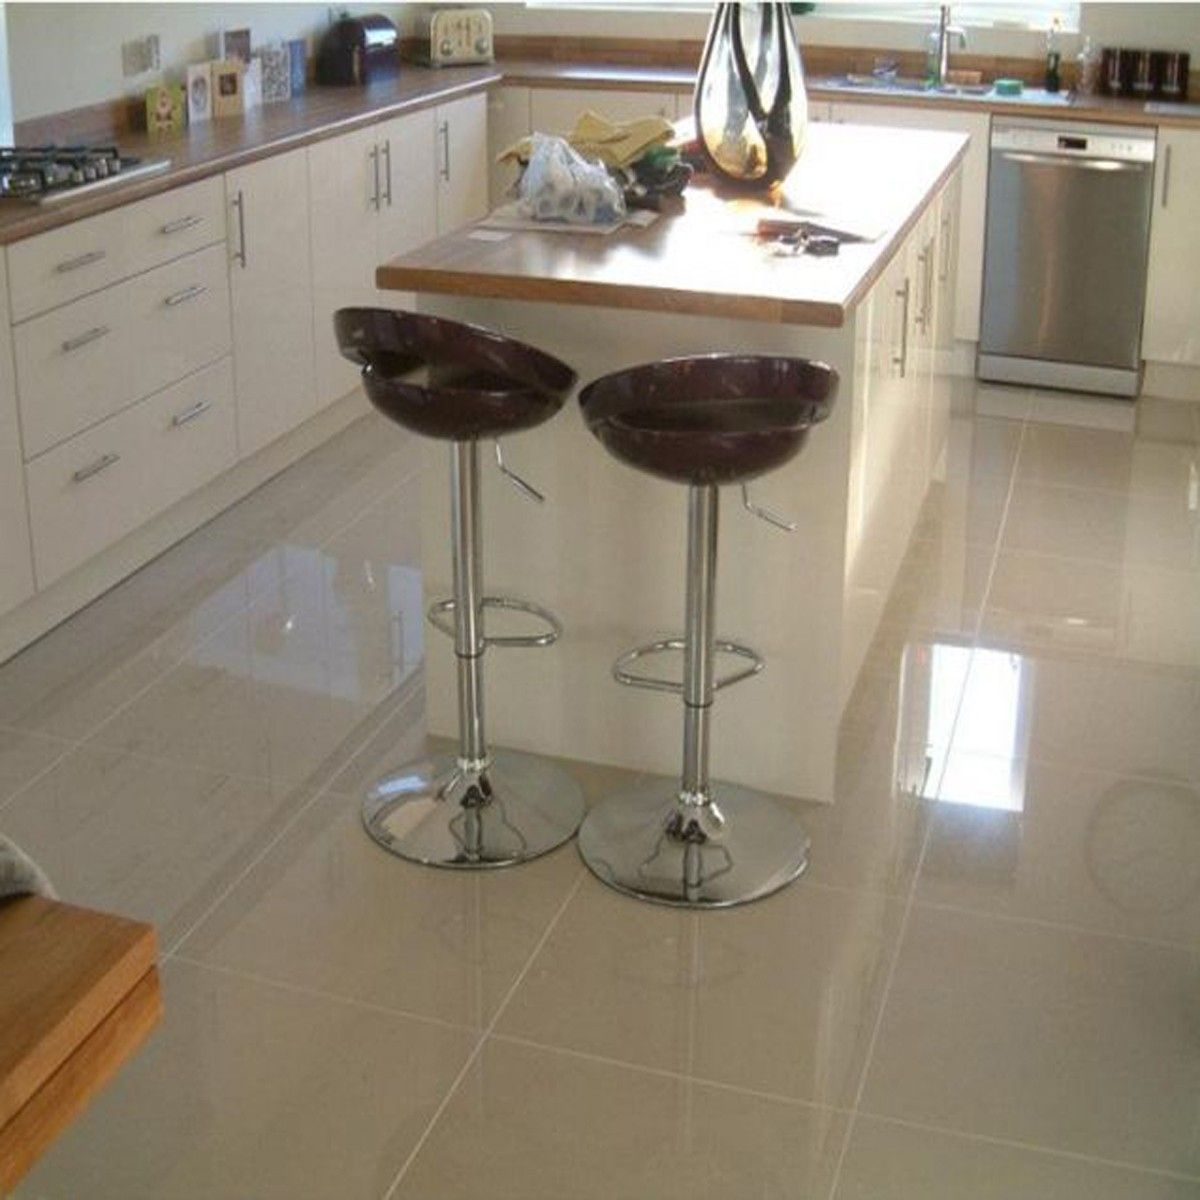 Cream High Gloss Kitchen Floor Tiles New House Outhouse